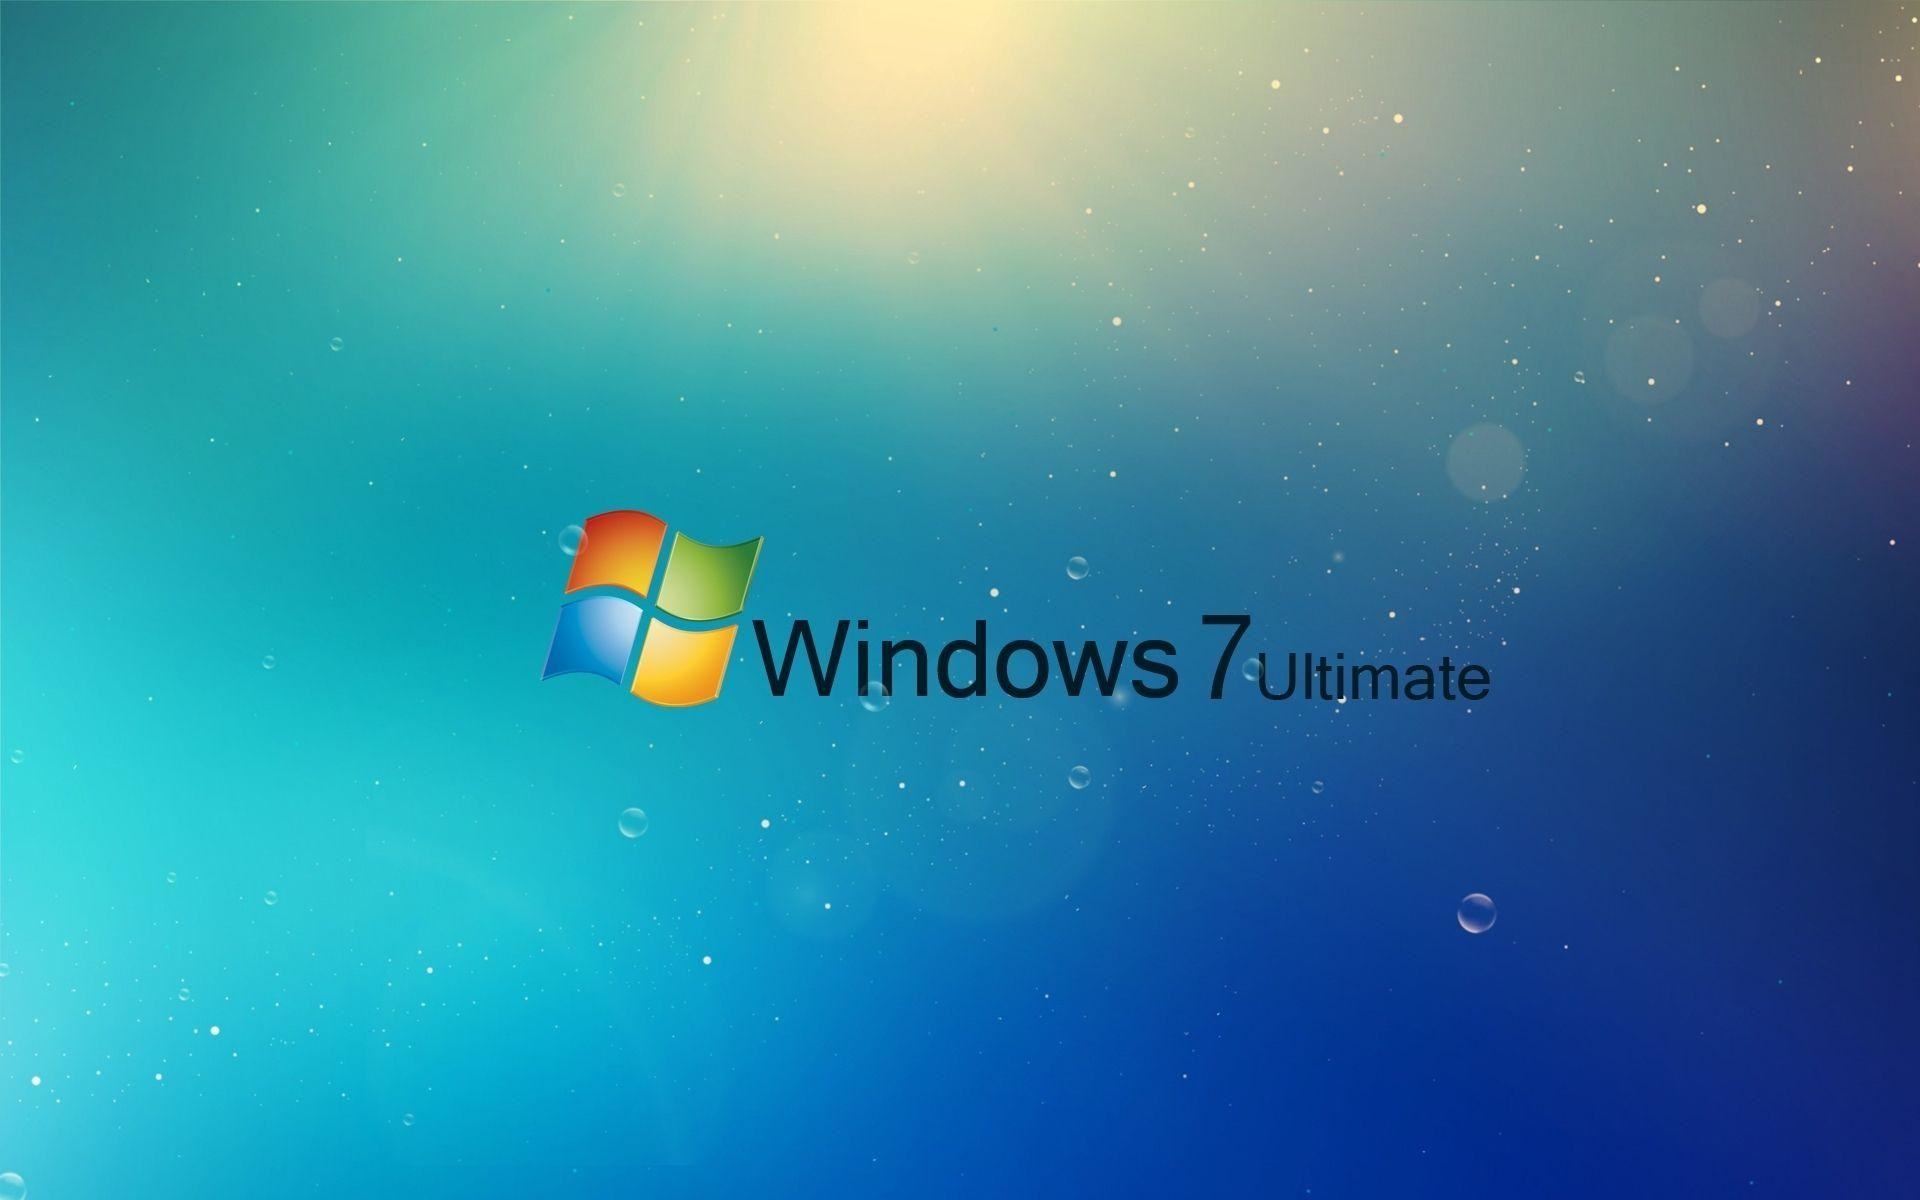 wallpaper for pc windows 7 (65+ pictures)